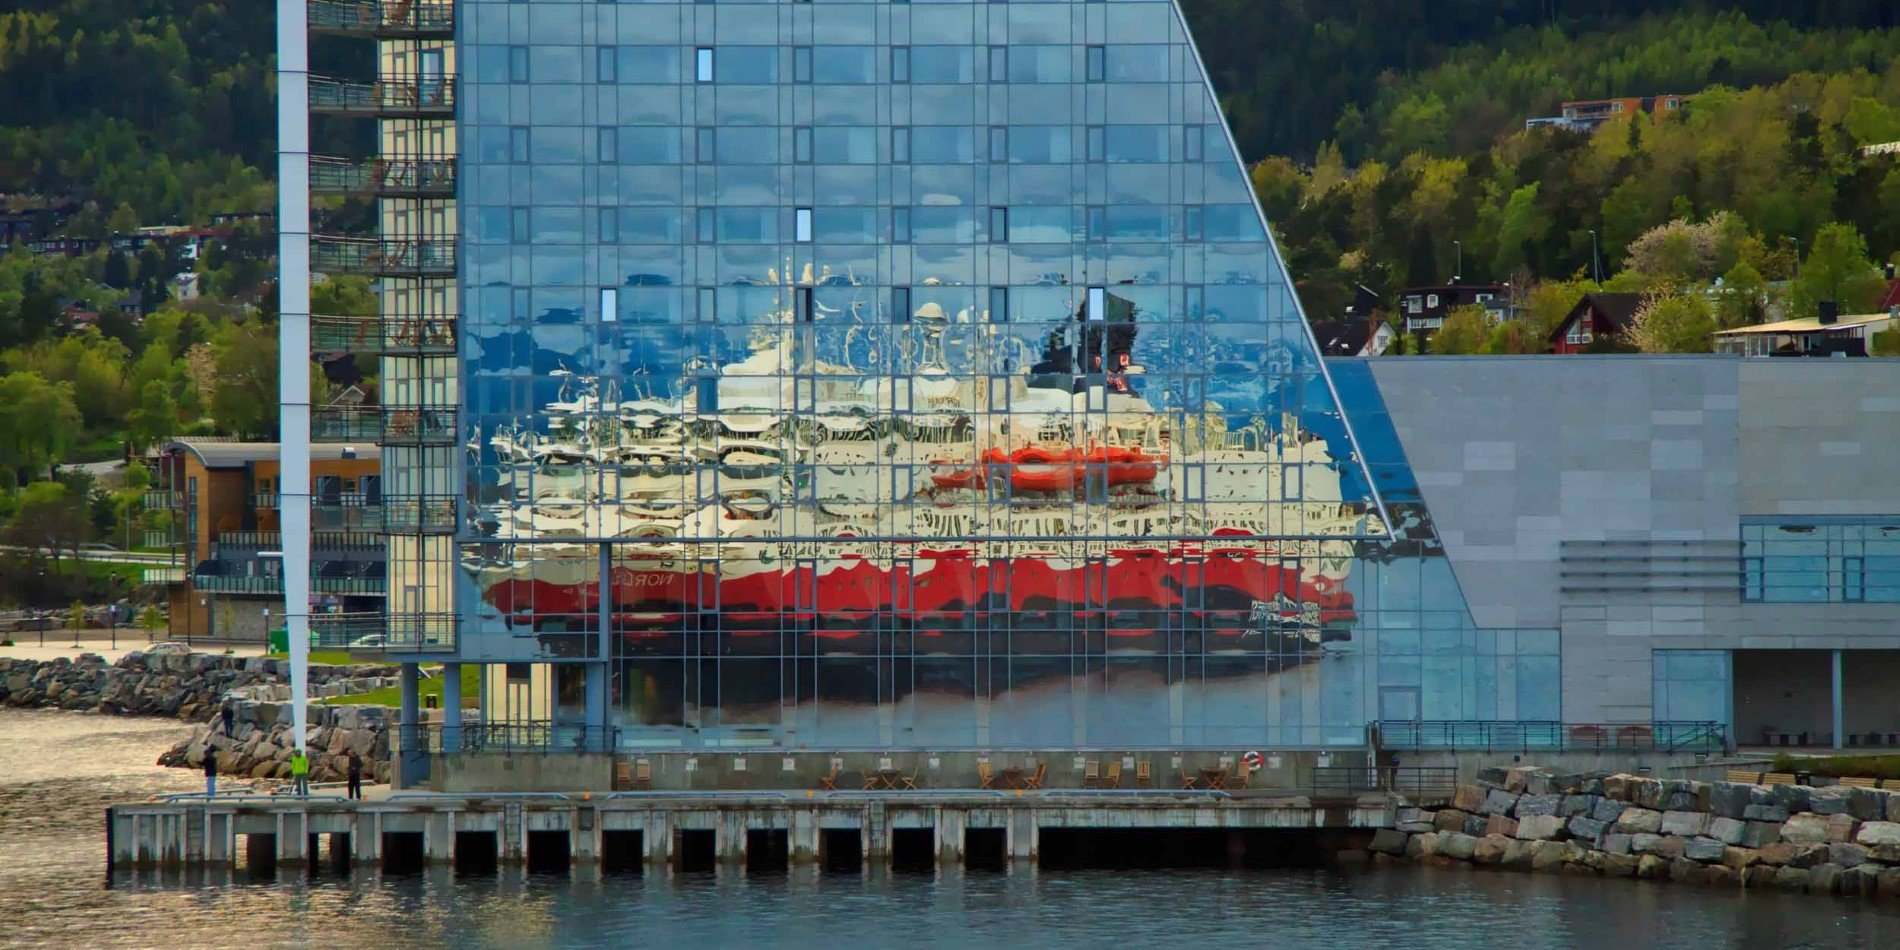 2500x1250_Molde-Port-Reflection_By_Marco-Habbecke_Guest-Image.jpg